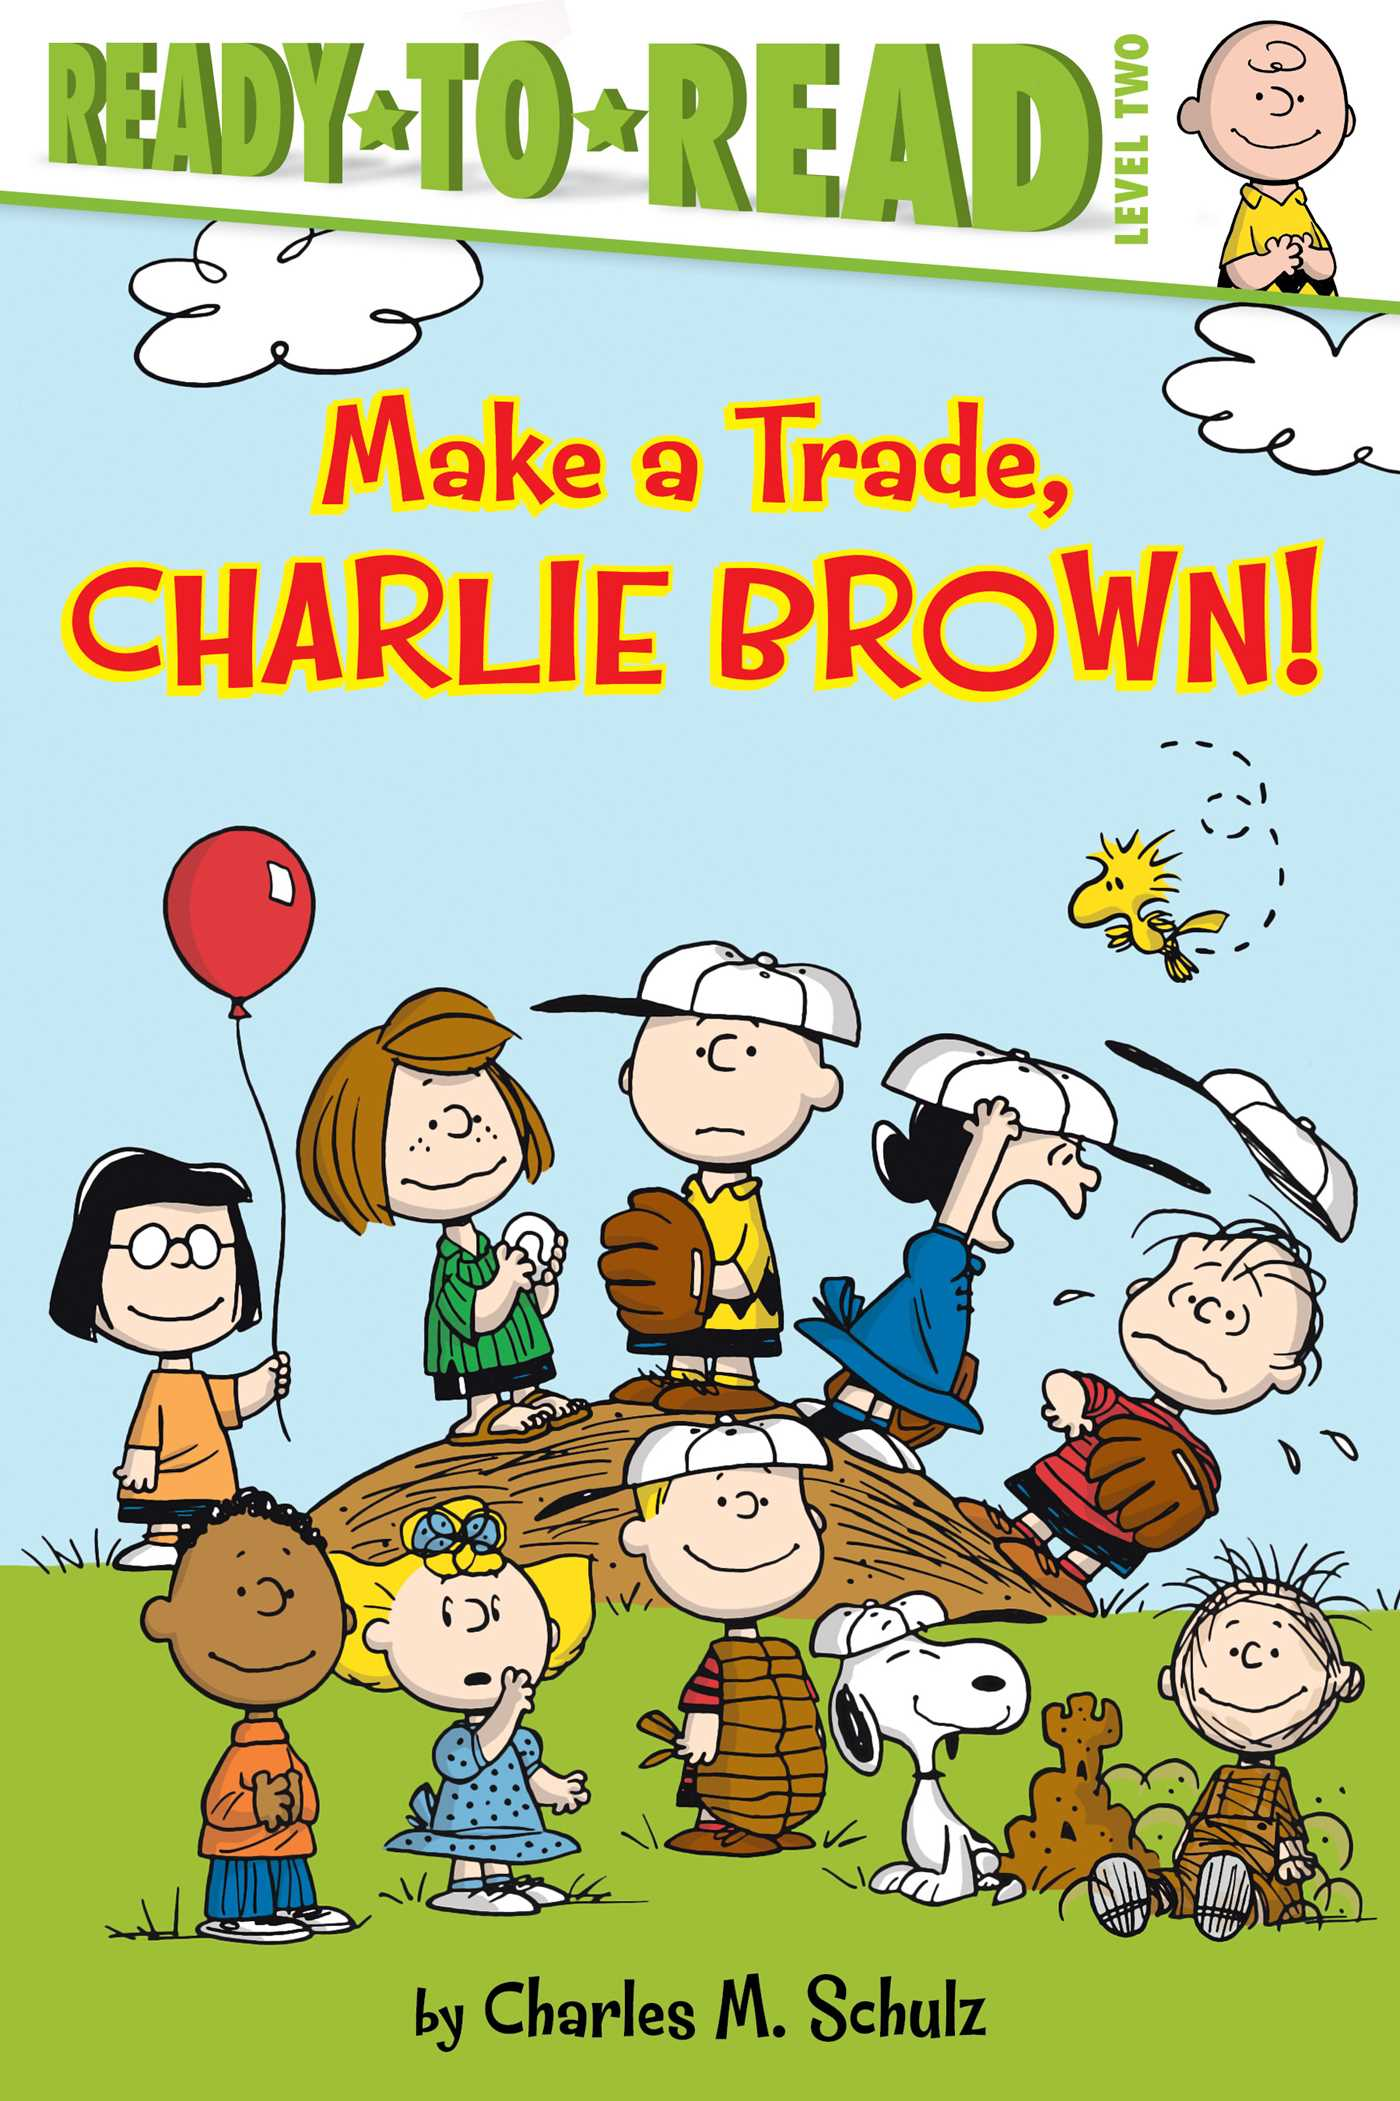 Make a trade charlie brown 9781481456876 hr